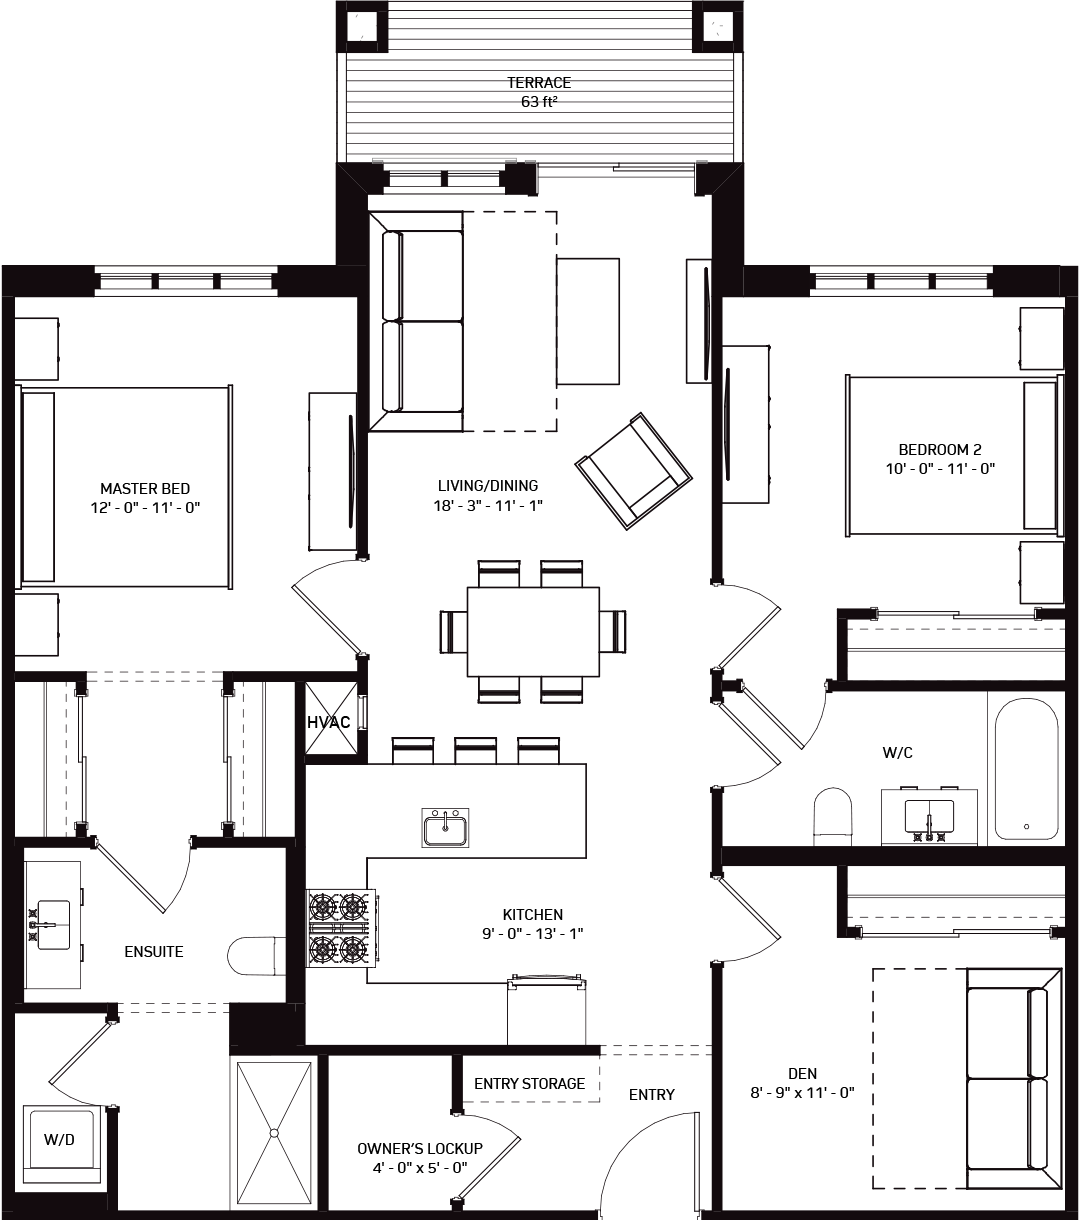 Valley Lodge Summit Floorplans Image